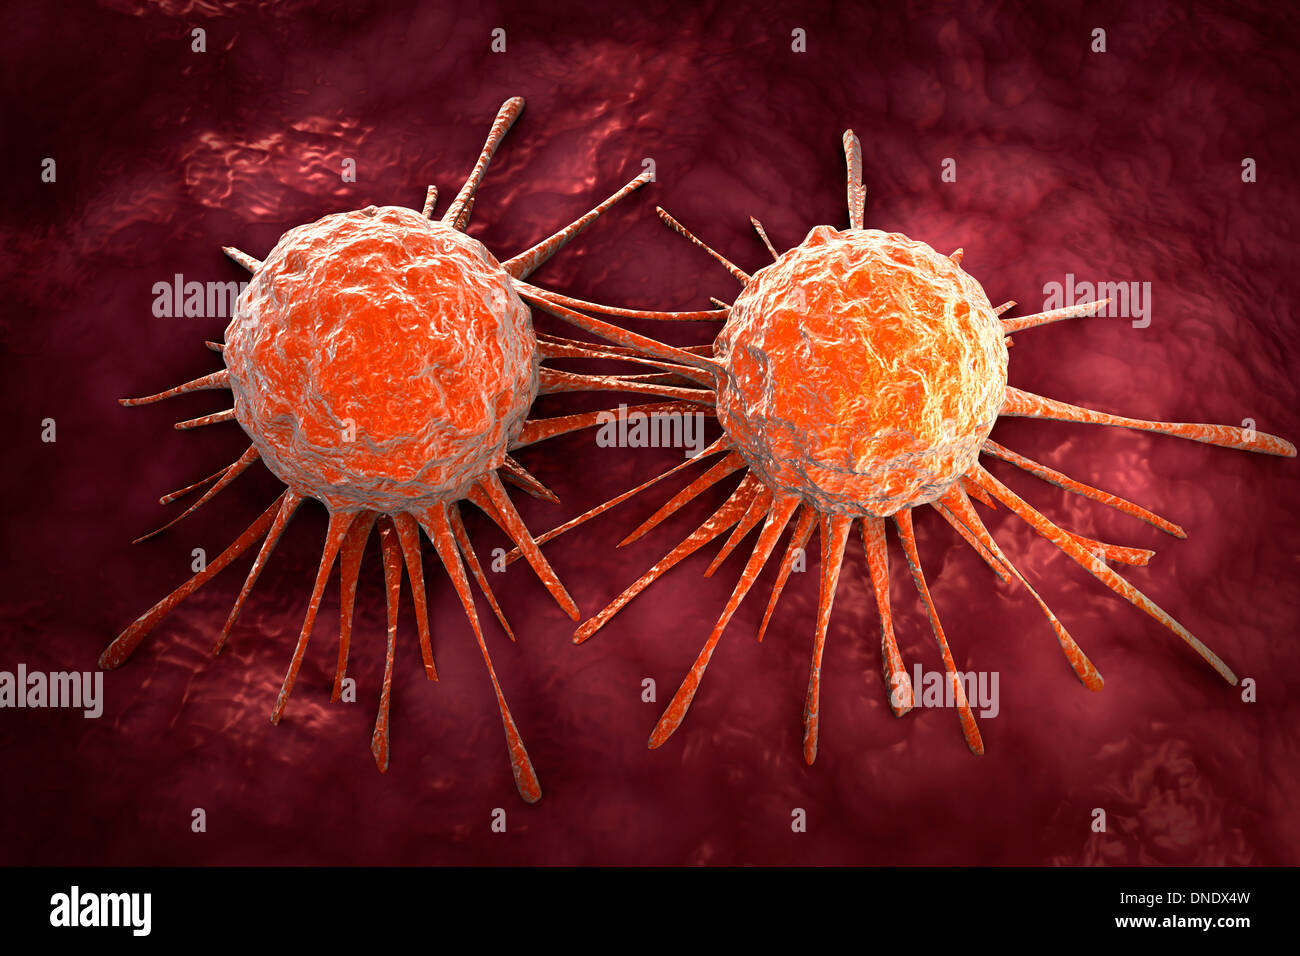 Conceptual image of cancer virus. Stock Photo